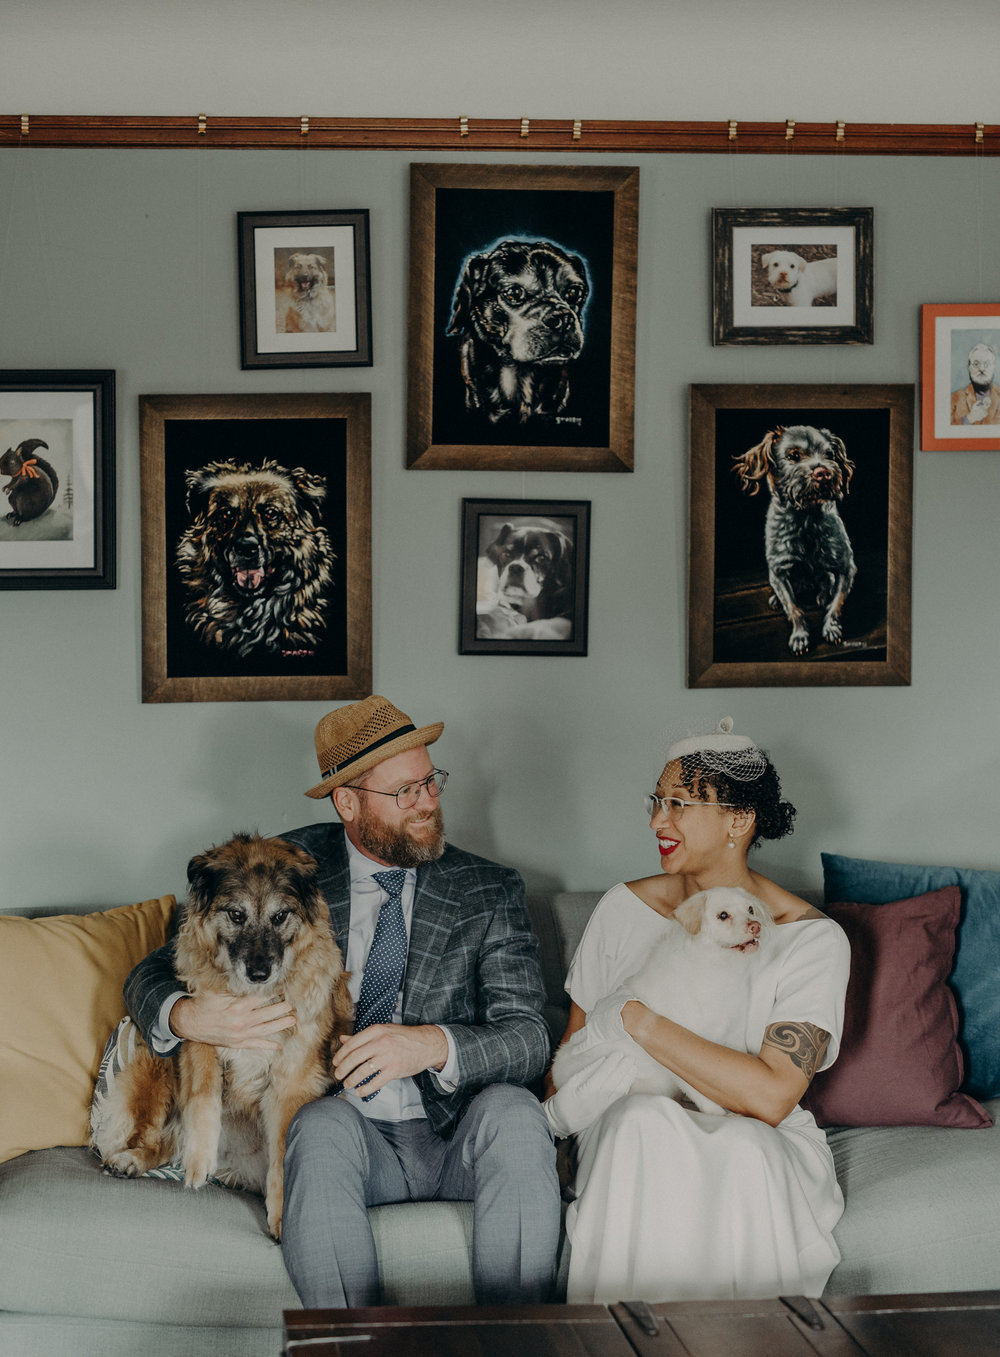 Los Angeles Wedding Photographer - Portland Elopement Photographer - IsaiahAndTaylor.com-052.jpg